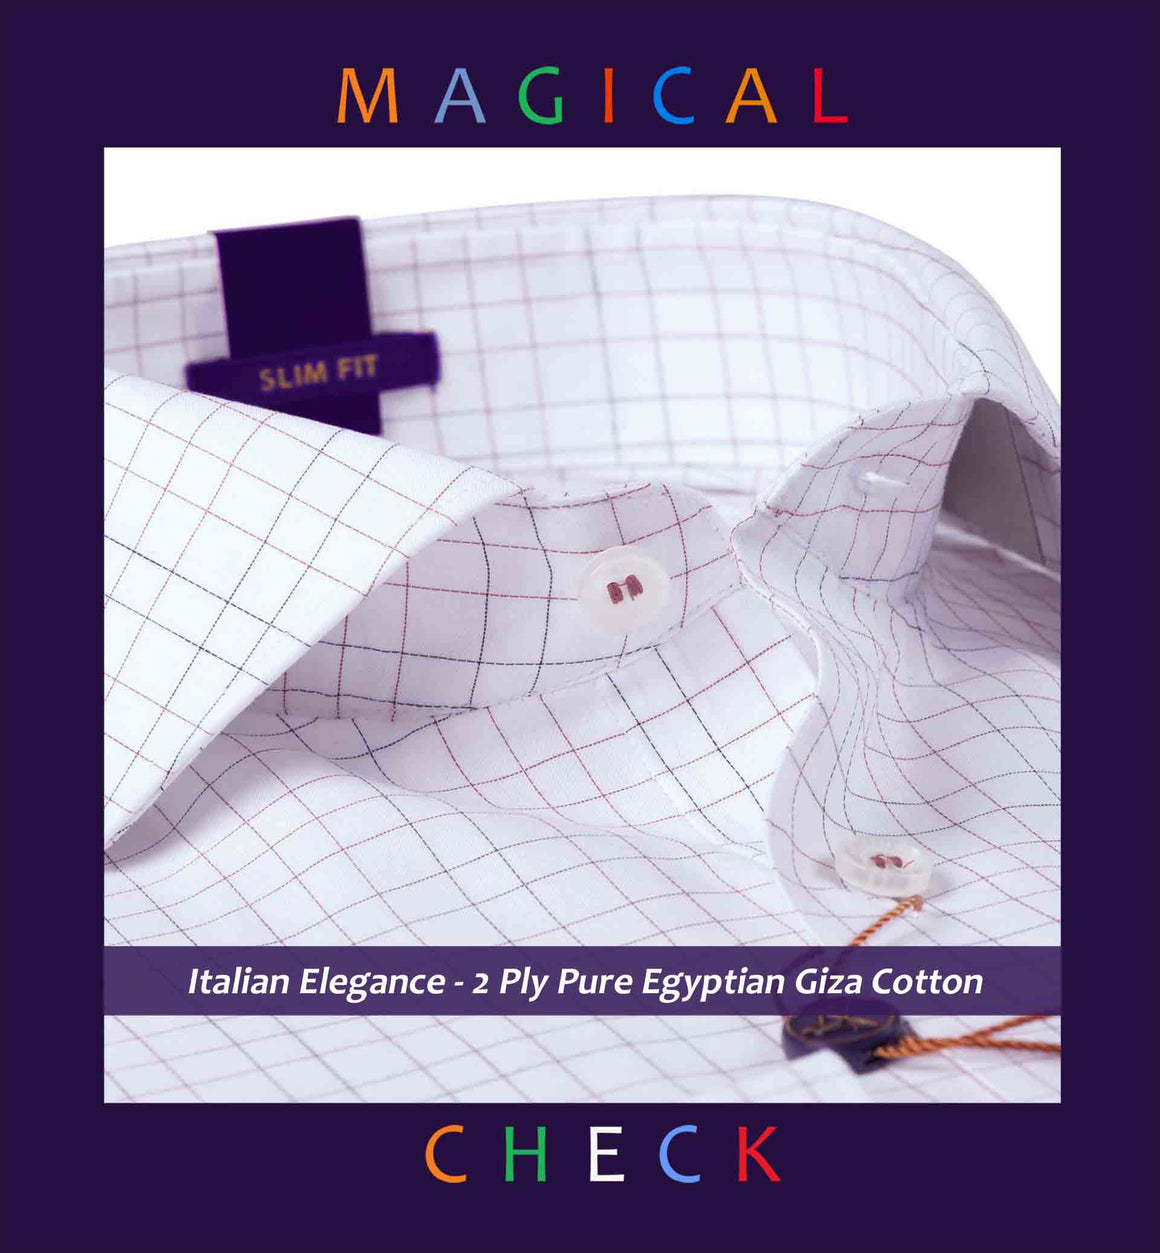 Dunbar- Burgundy & Navy Magical Pin Check- 2 Ply Pure Egyptian Giza Cotton